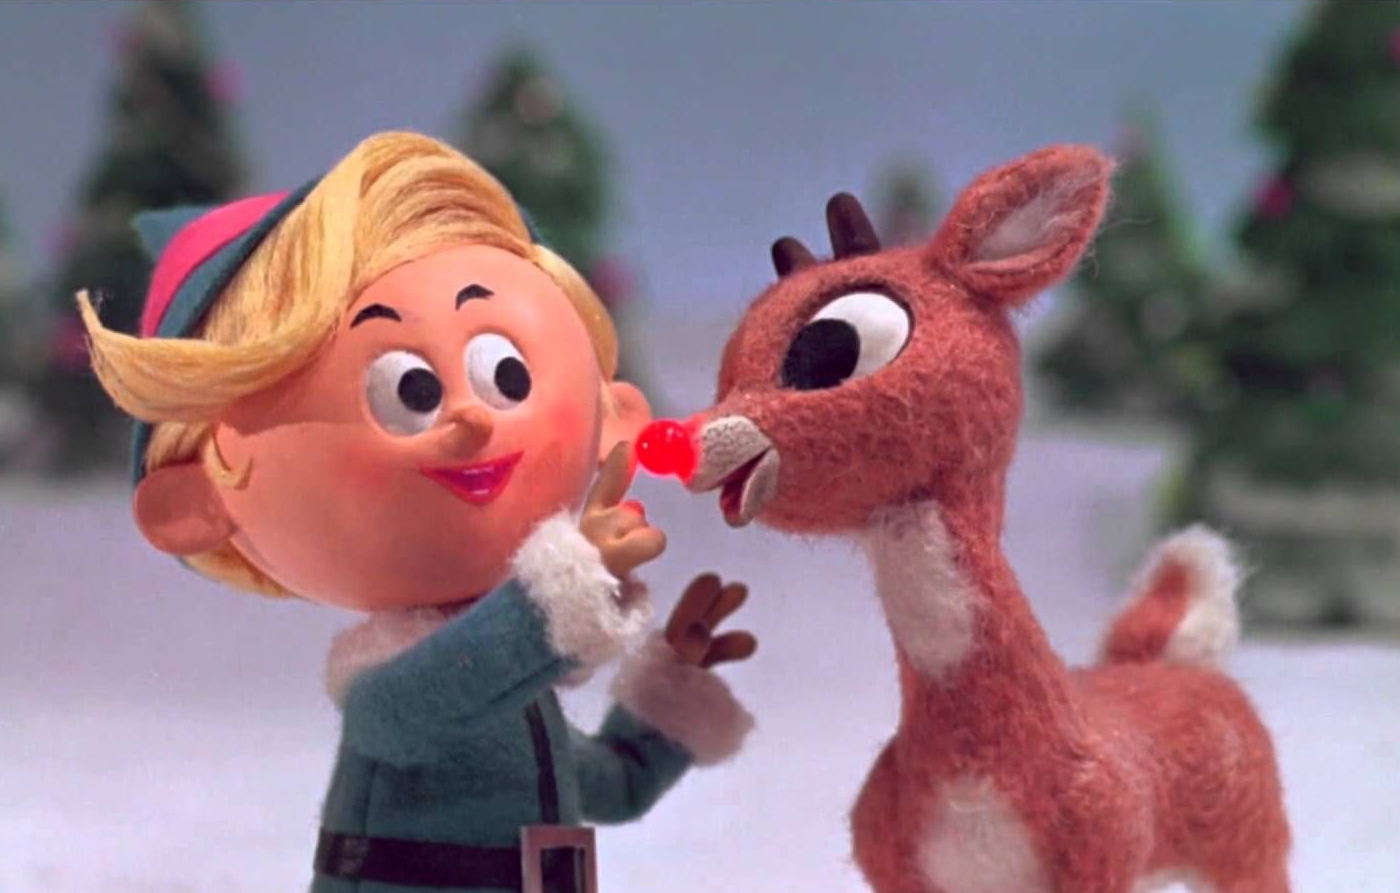 Rudolph-the-Red-Nosed-Reindeer-794731774-1575052536128.jpg